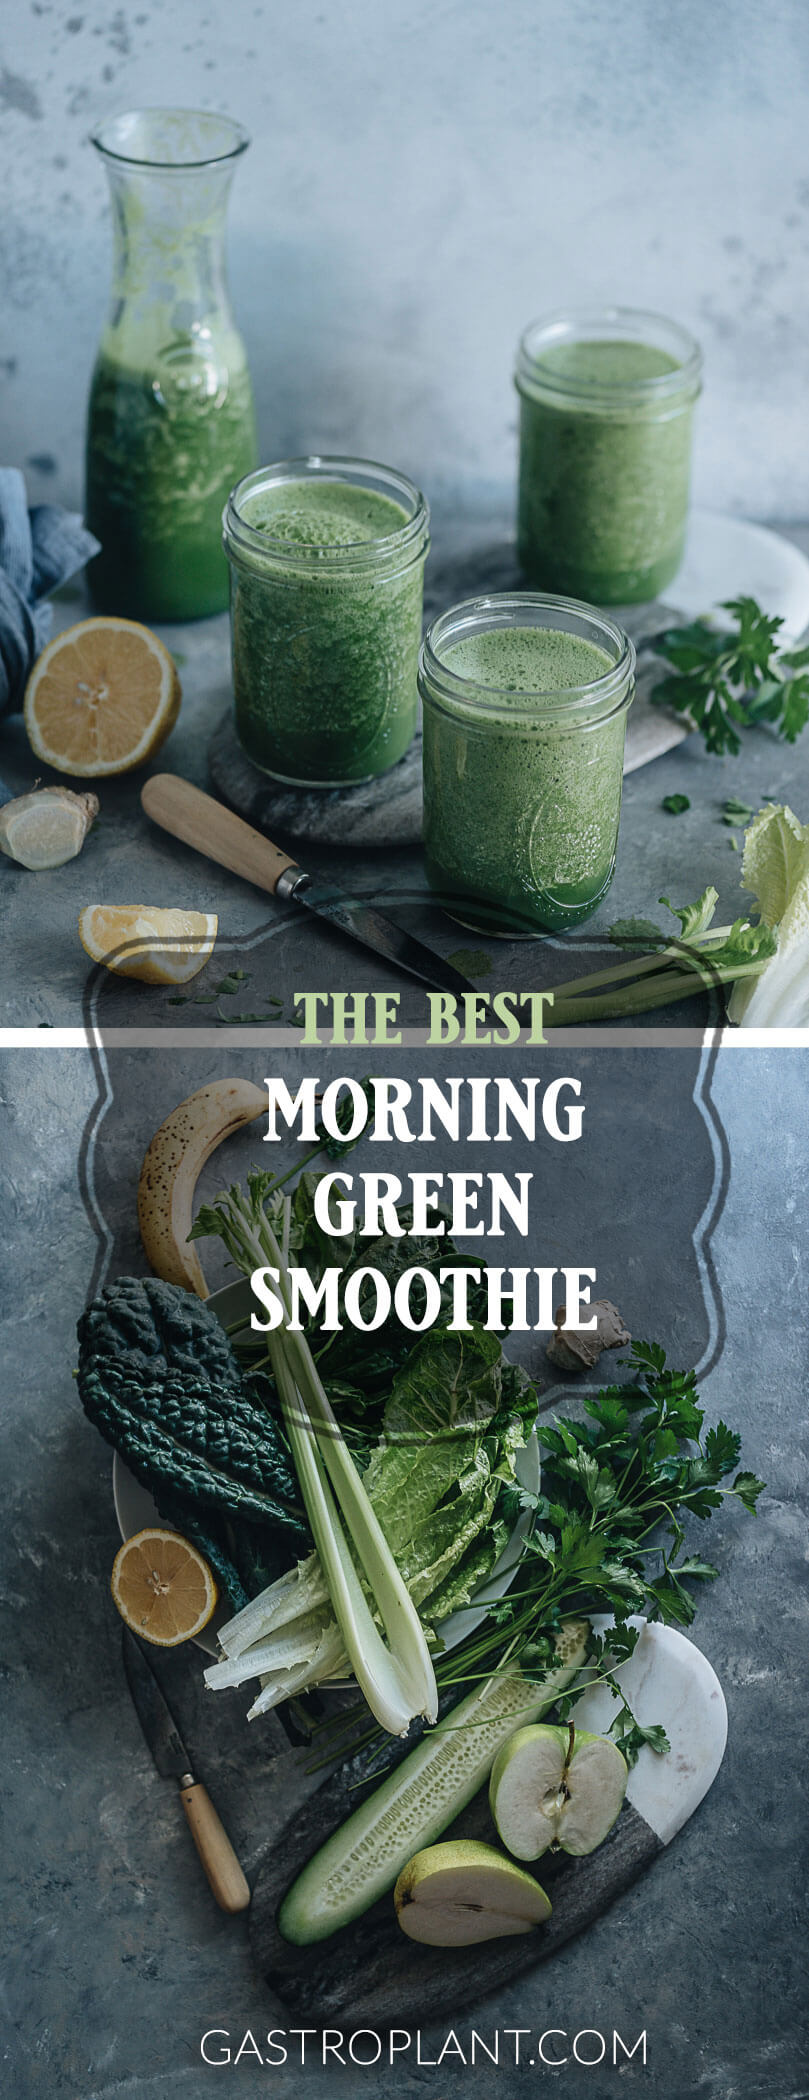 Morning green smoothie collage